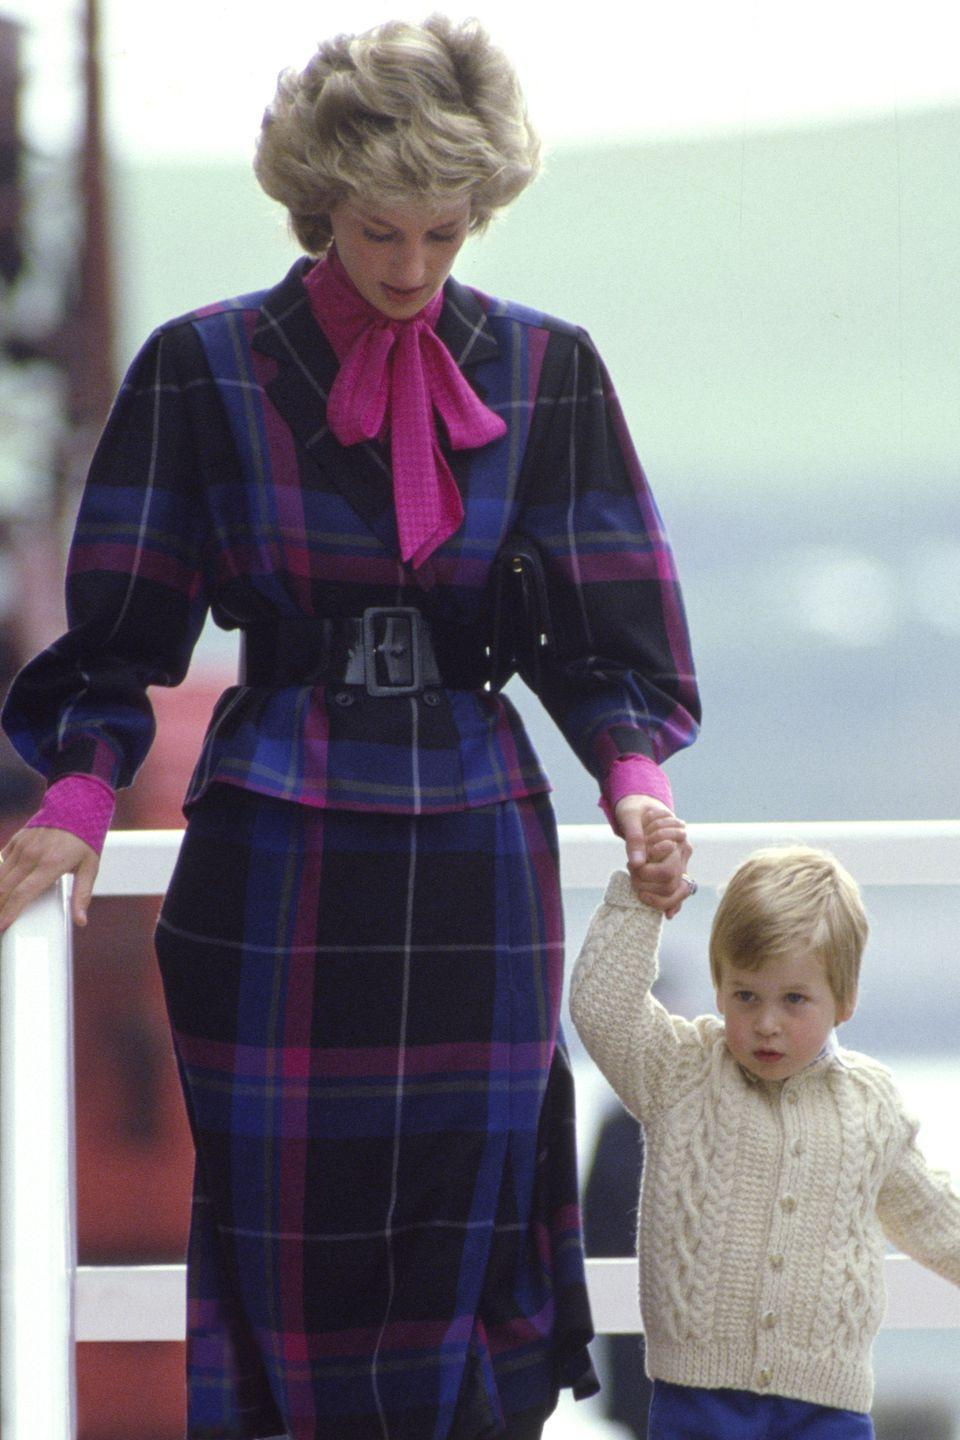 <p>Including purple, which she wore while walking with a little Prince William on the Royal Yacht Britannia in 1985.</p>